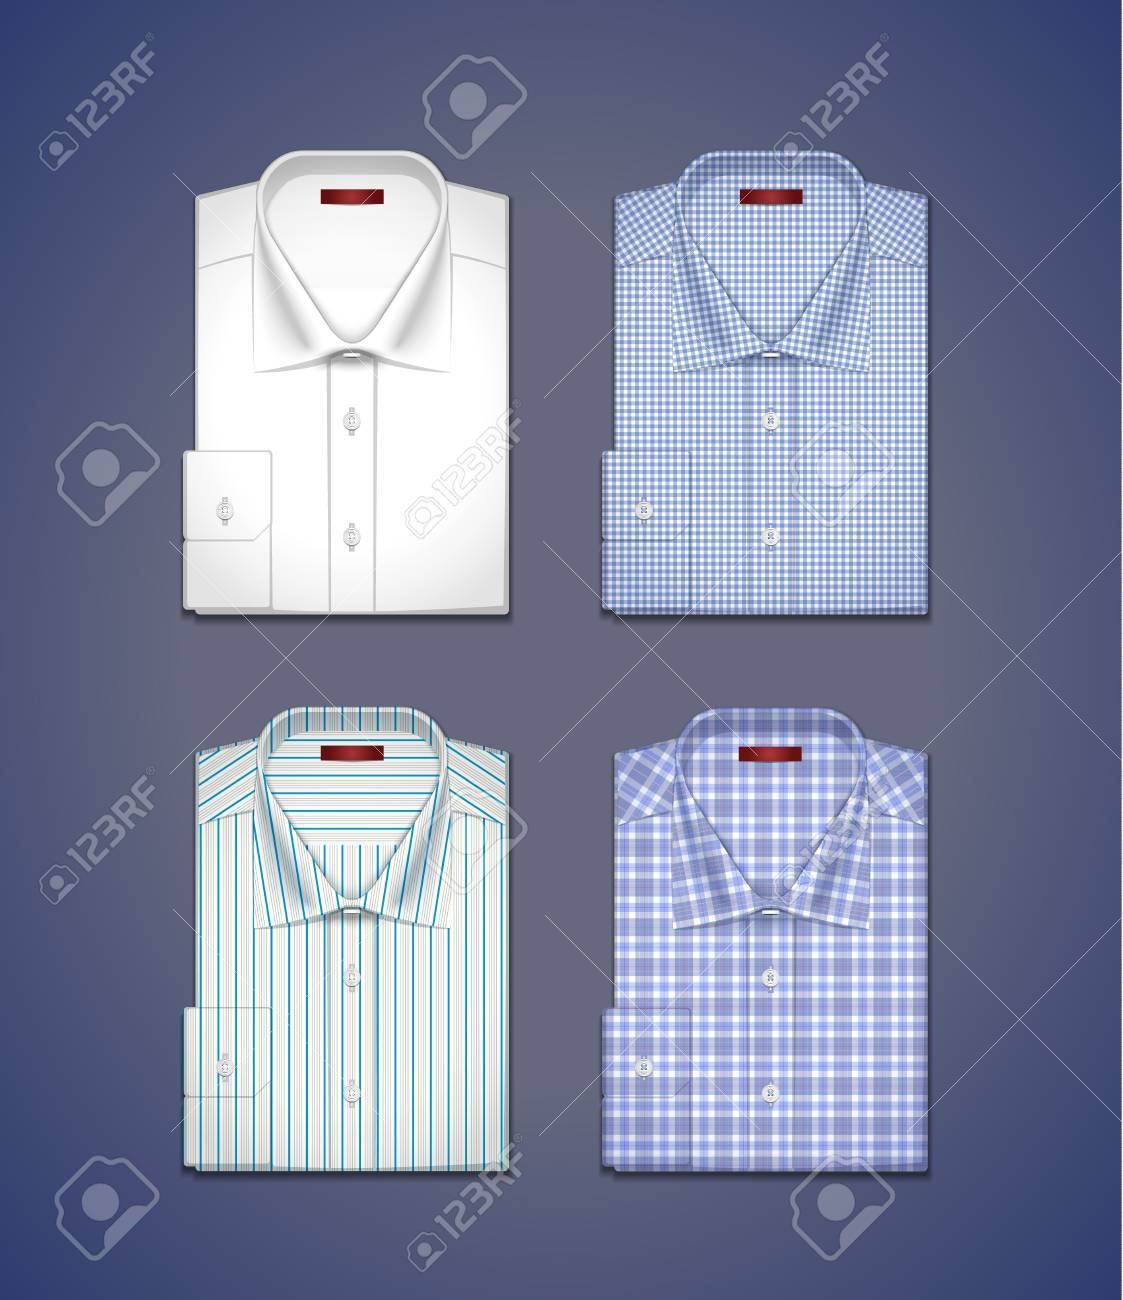 images of men s shirts Stock Vector - 17035597